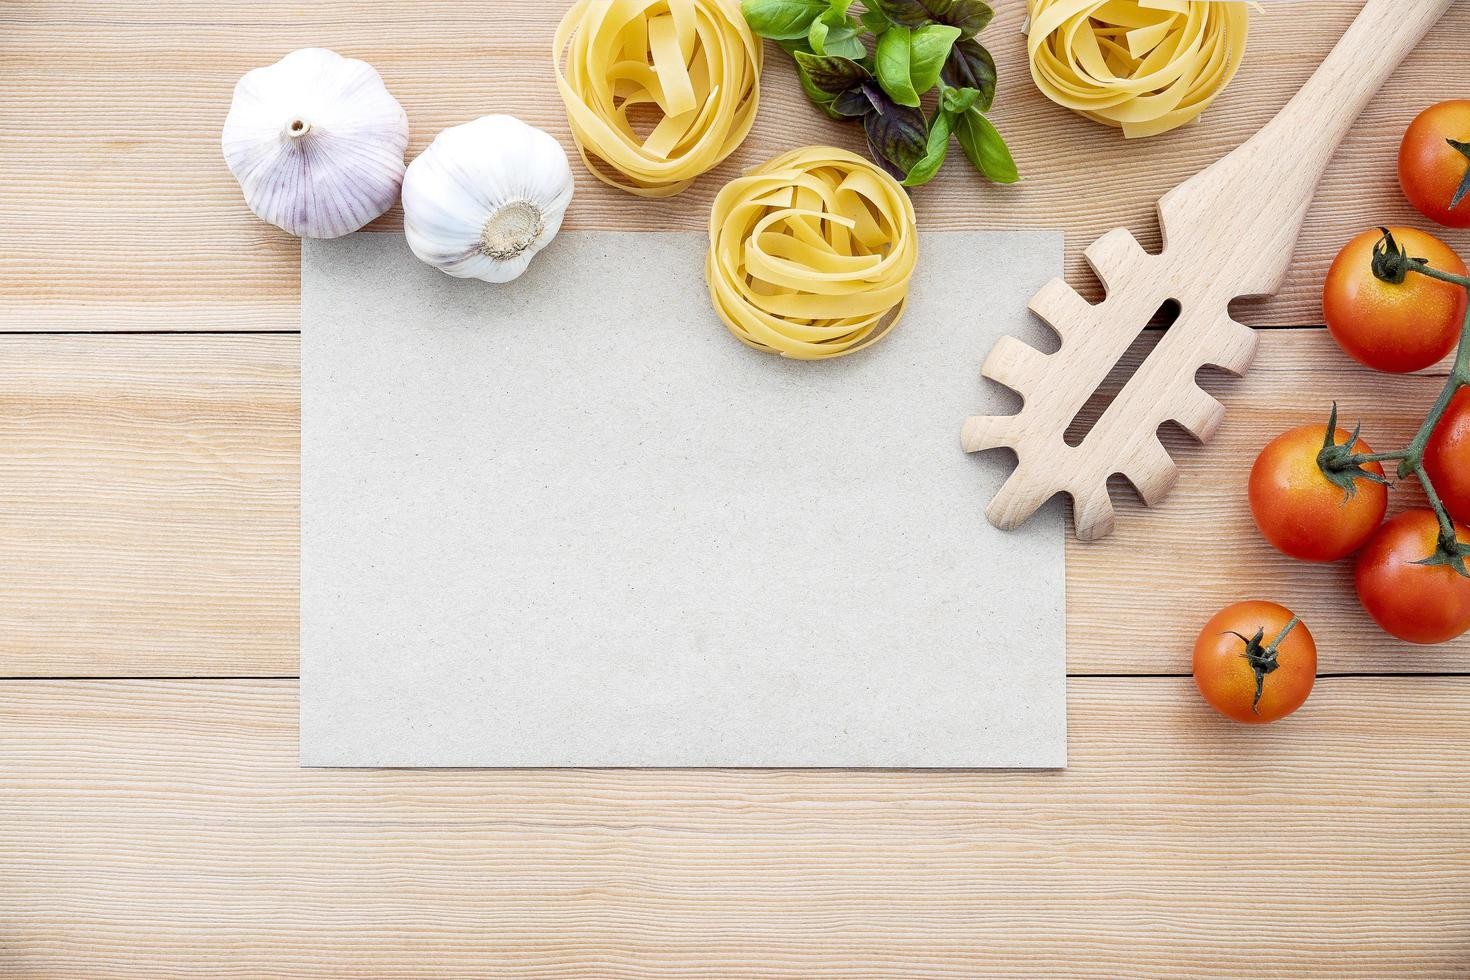 Pasta ingredients with a blank page photo